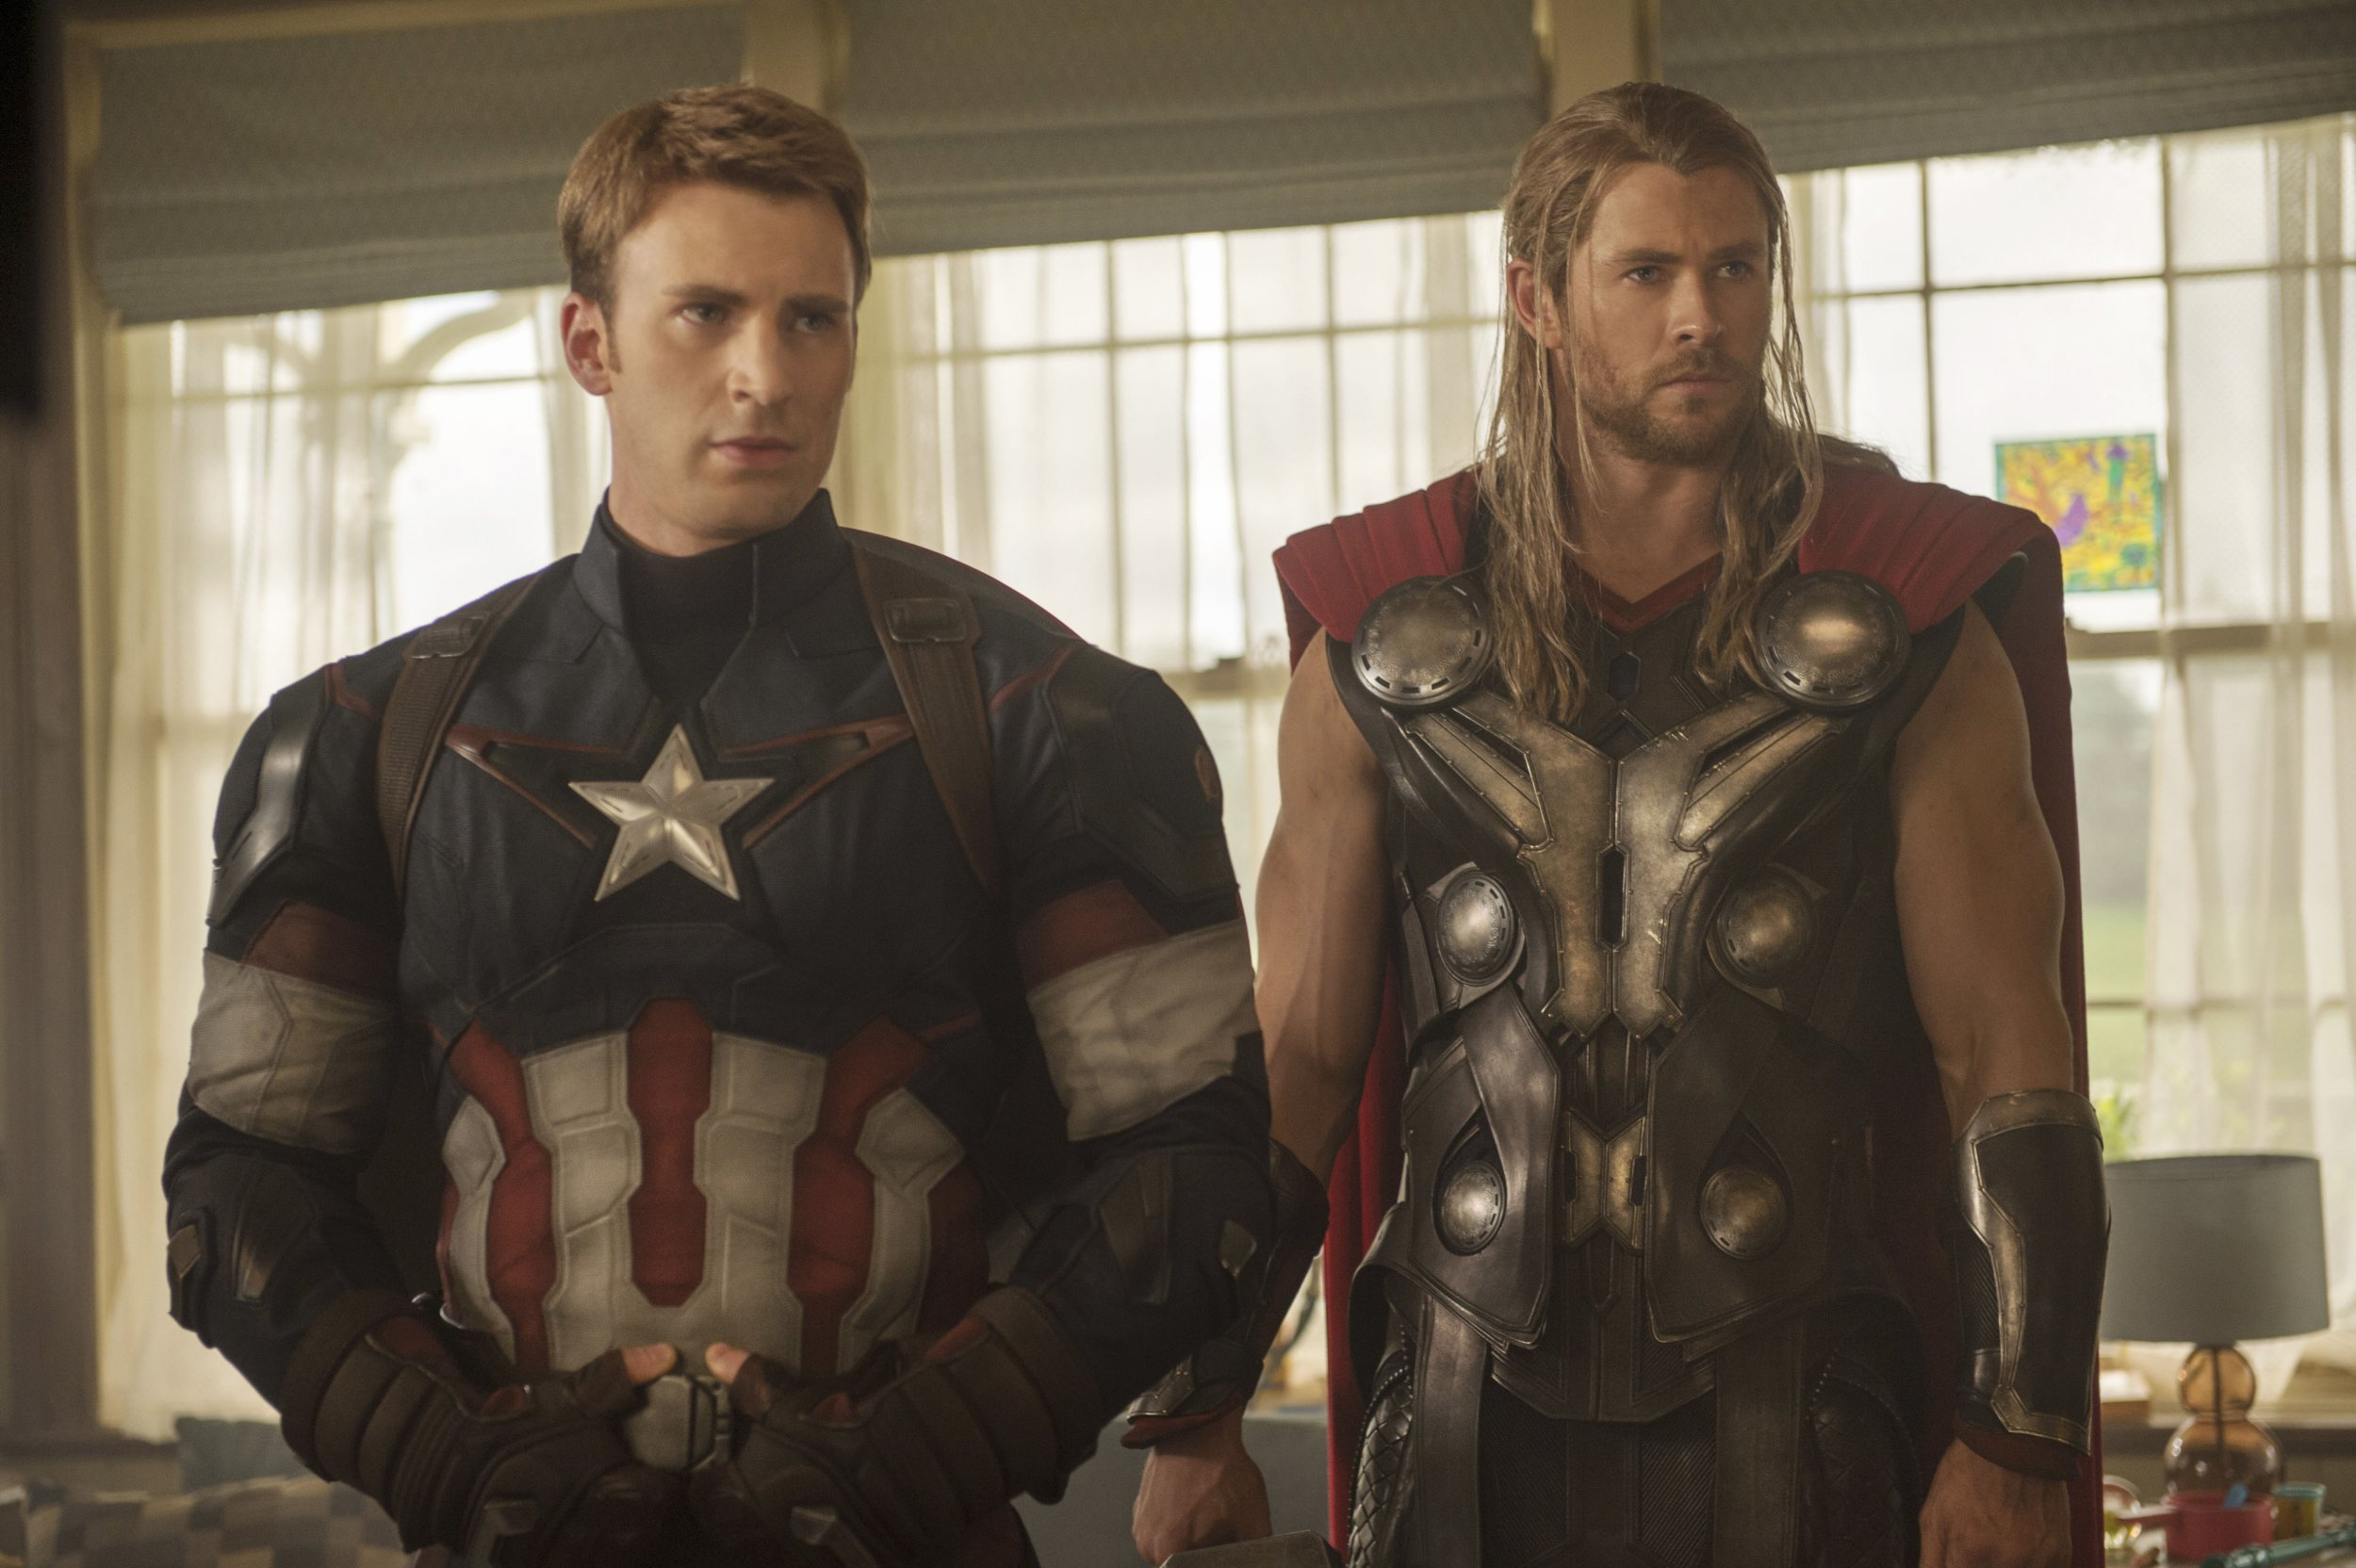 Editorial use only. No book cover usage. Mandatory Credit: Photo by Jay Maidment/Marvel/Walt Disney/Kobal/REX/Shutterstock (5886283aq) Chris Evans, Chris Hemsworth Avengers - Age Of Ultron - 2015 Director: Joss Whedon Marvel/Walt Disney Pictures USA Scene Still Action/Adventure Avengers: L'?re d'Ultron